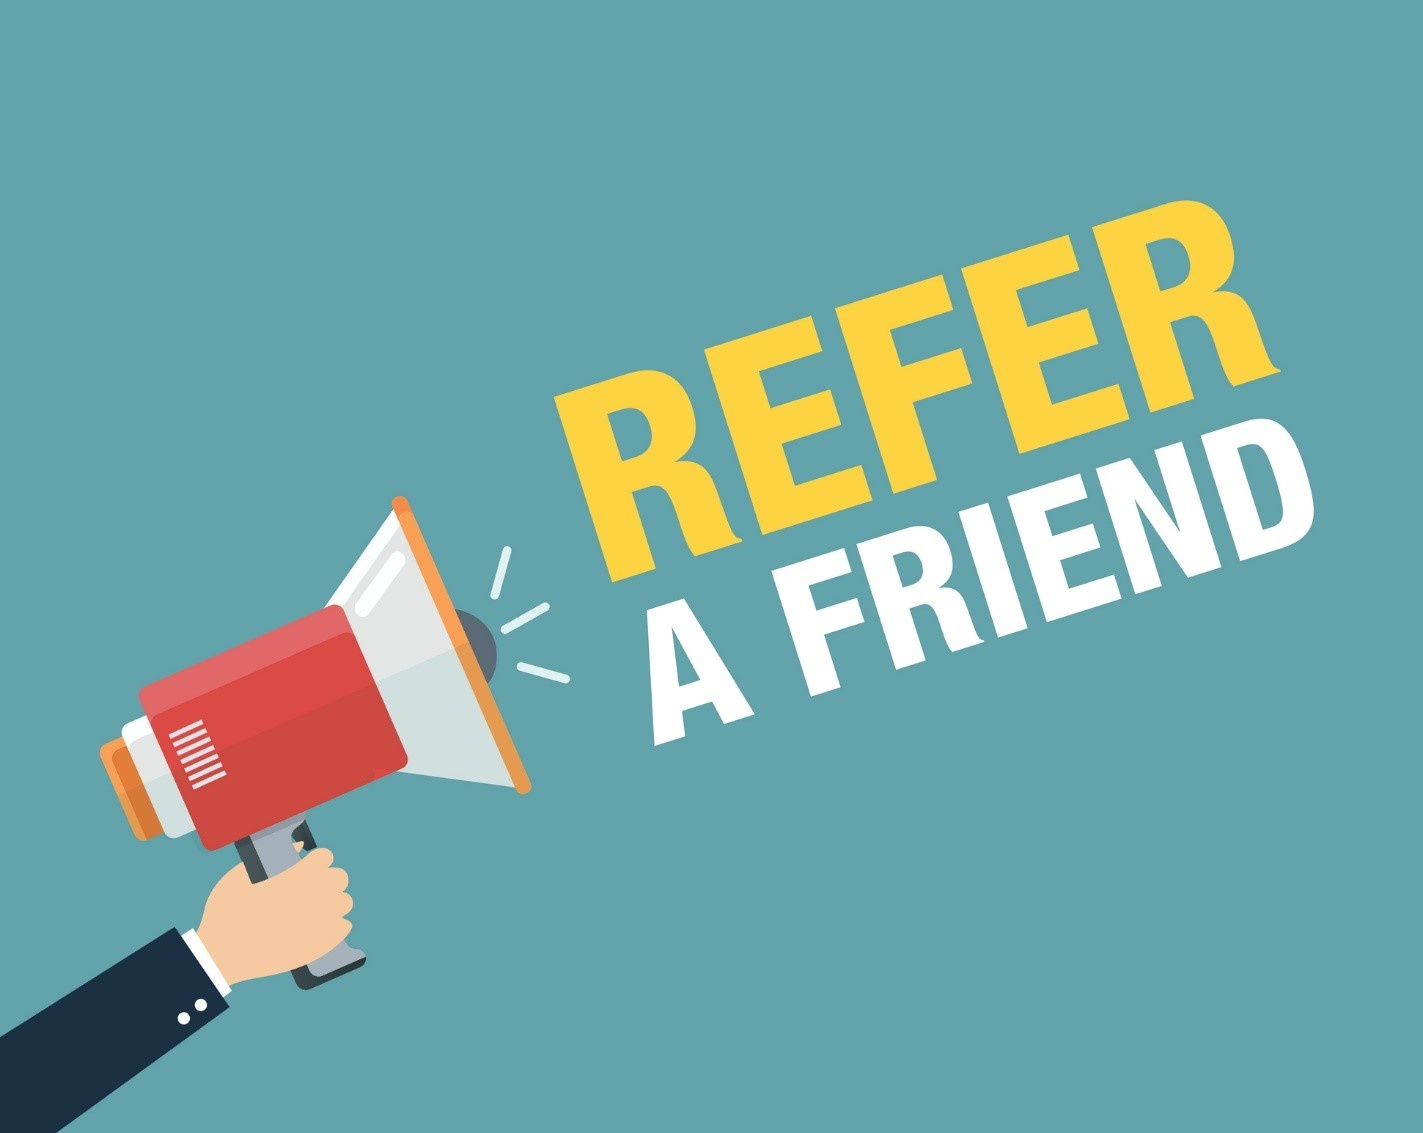 Get a recruiting boost by avoiding these common employee referral program mistakes.